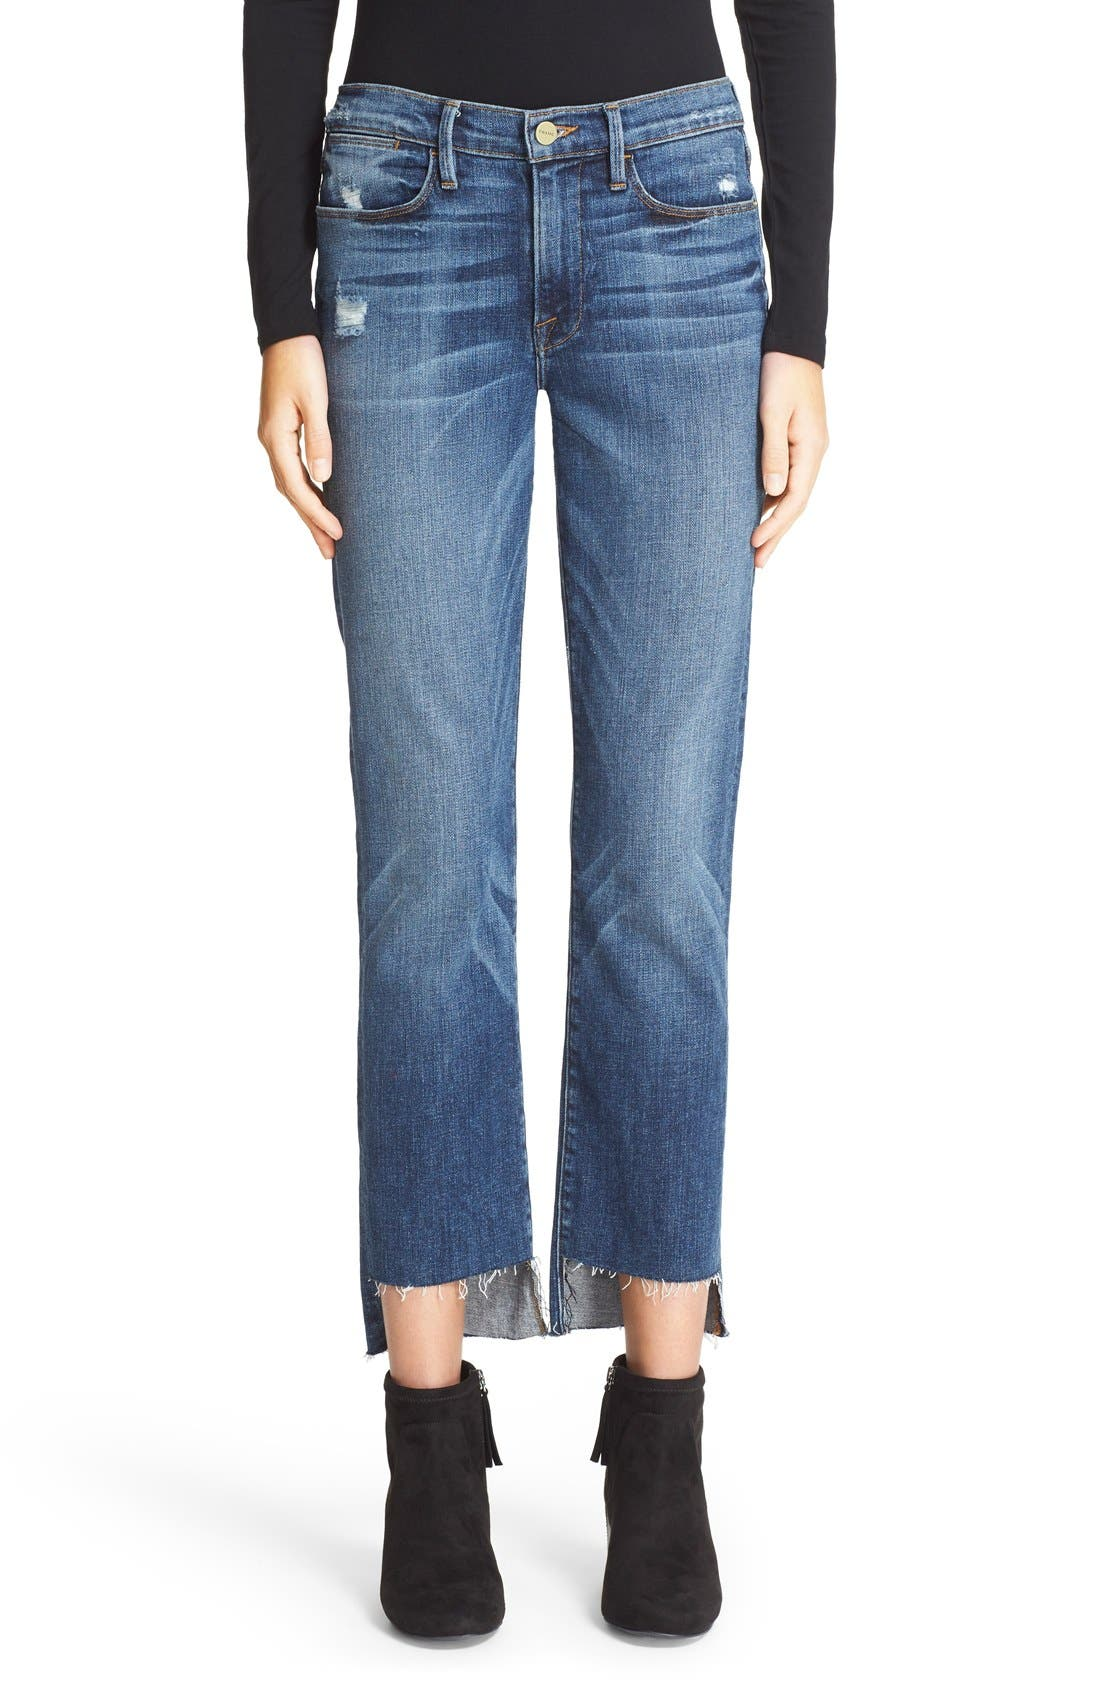 Main Image - FRAME 'Le High Straight' High Rise Staggered Hem Jeans (Carroll) (Nordstrom Exclusive)